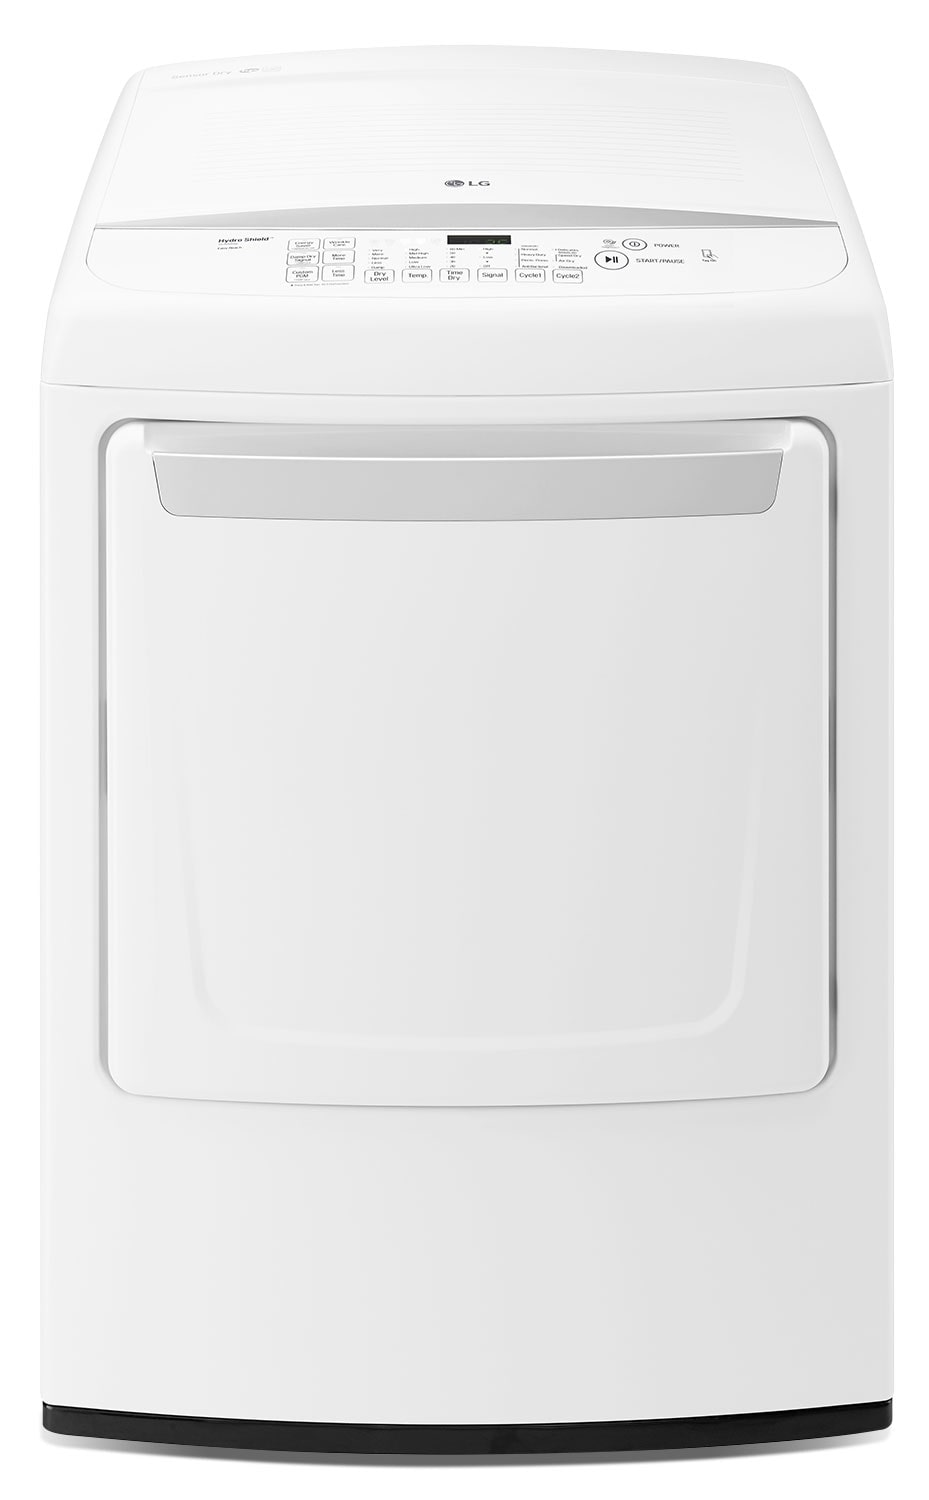 LG 7.3 Cu. Ft. High-Efficiency Front-Control Electric Dryer with NFC Tag On – White